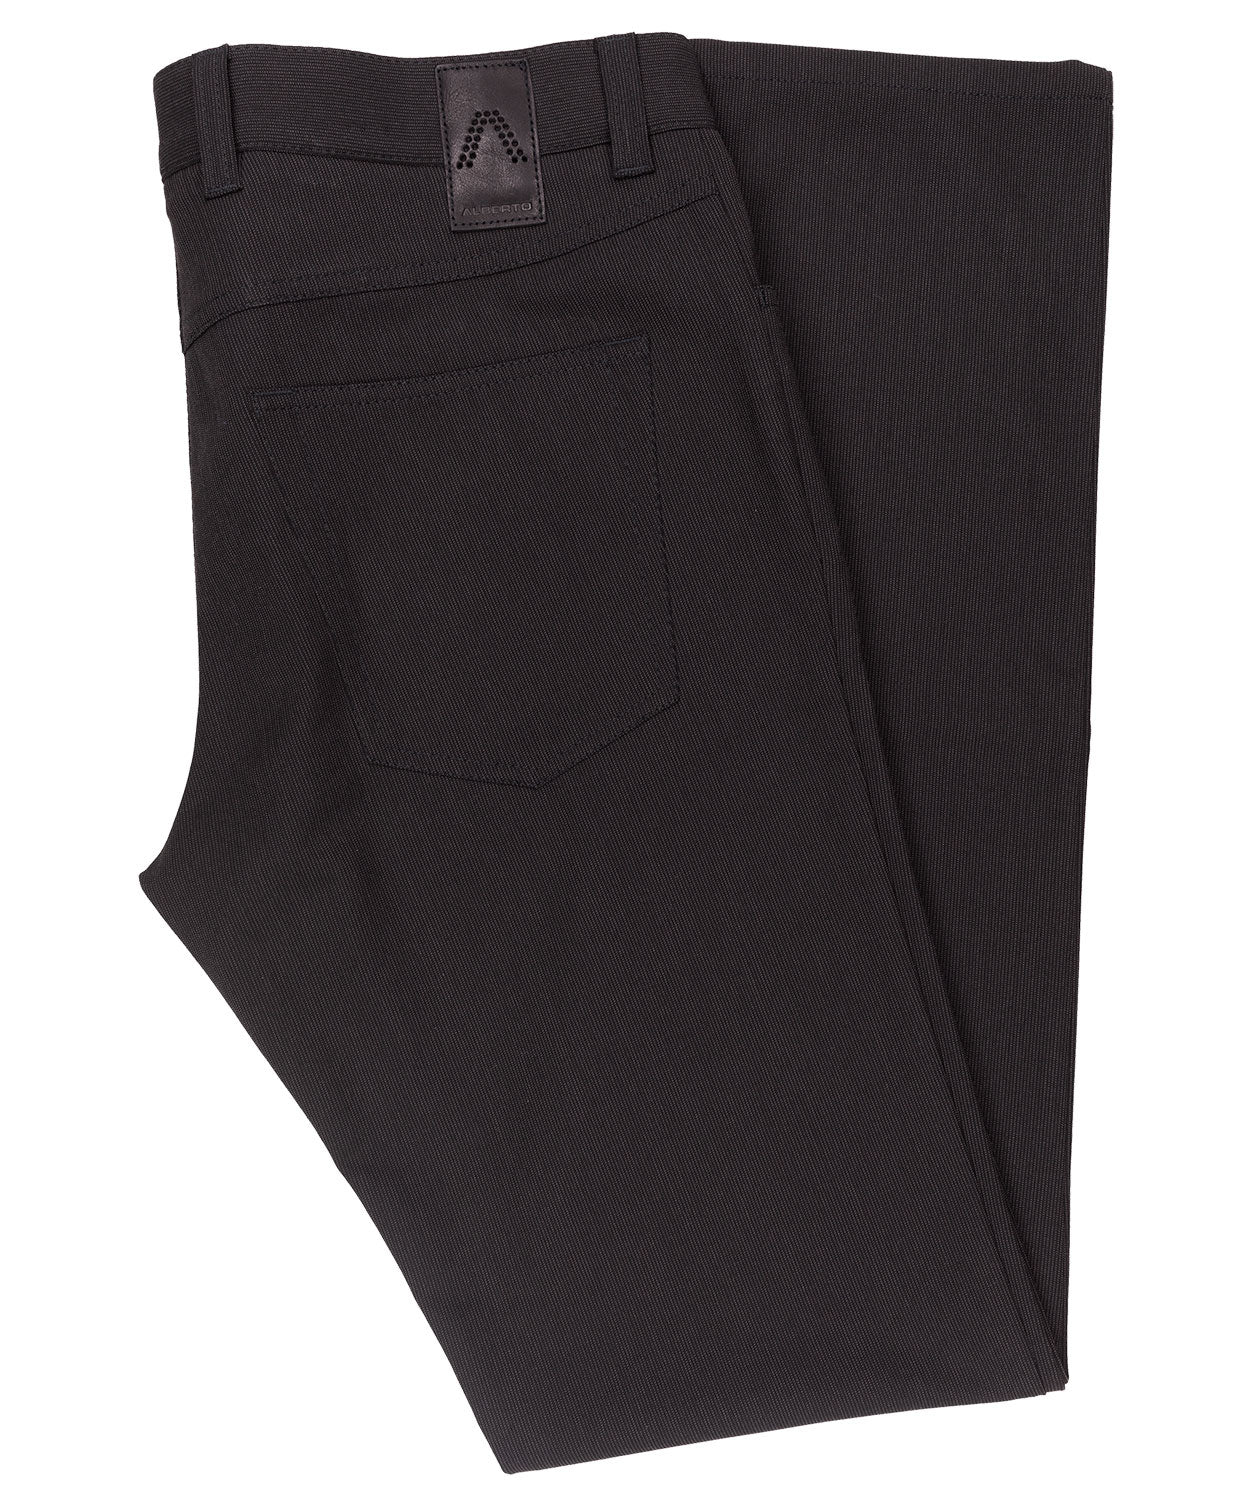 Pipe Charcoal/Black Ceramica Fine Stripe Pant